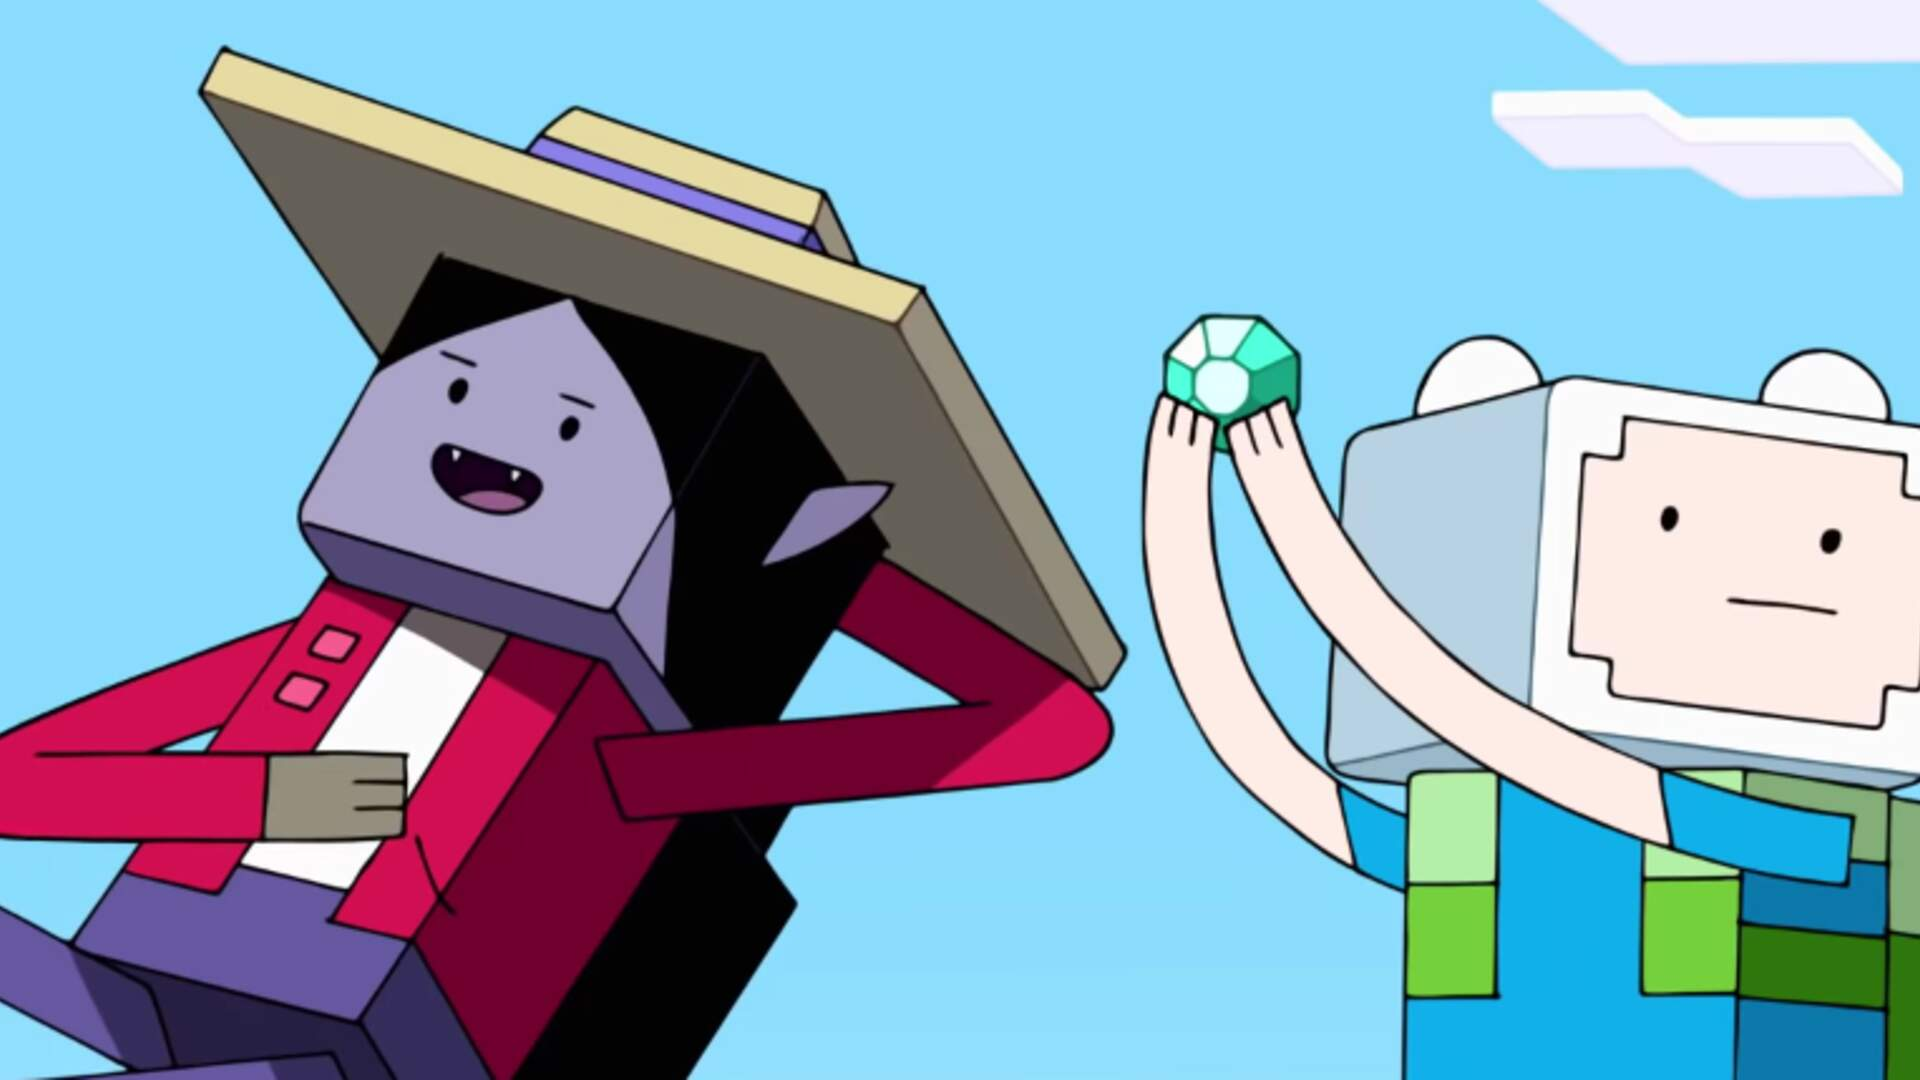 The Adventure Time Minecraft Crossover Episode Airs Tonight on Cartoon Network